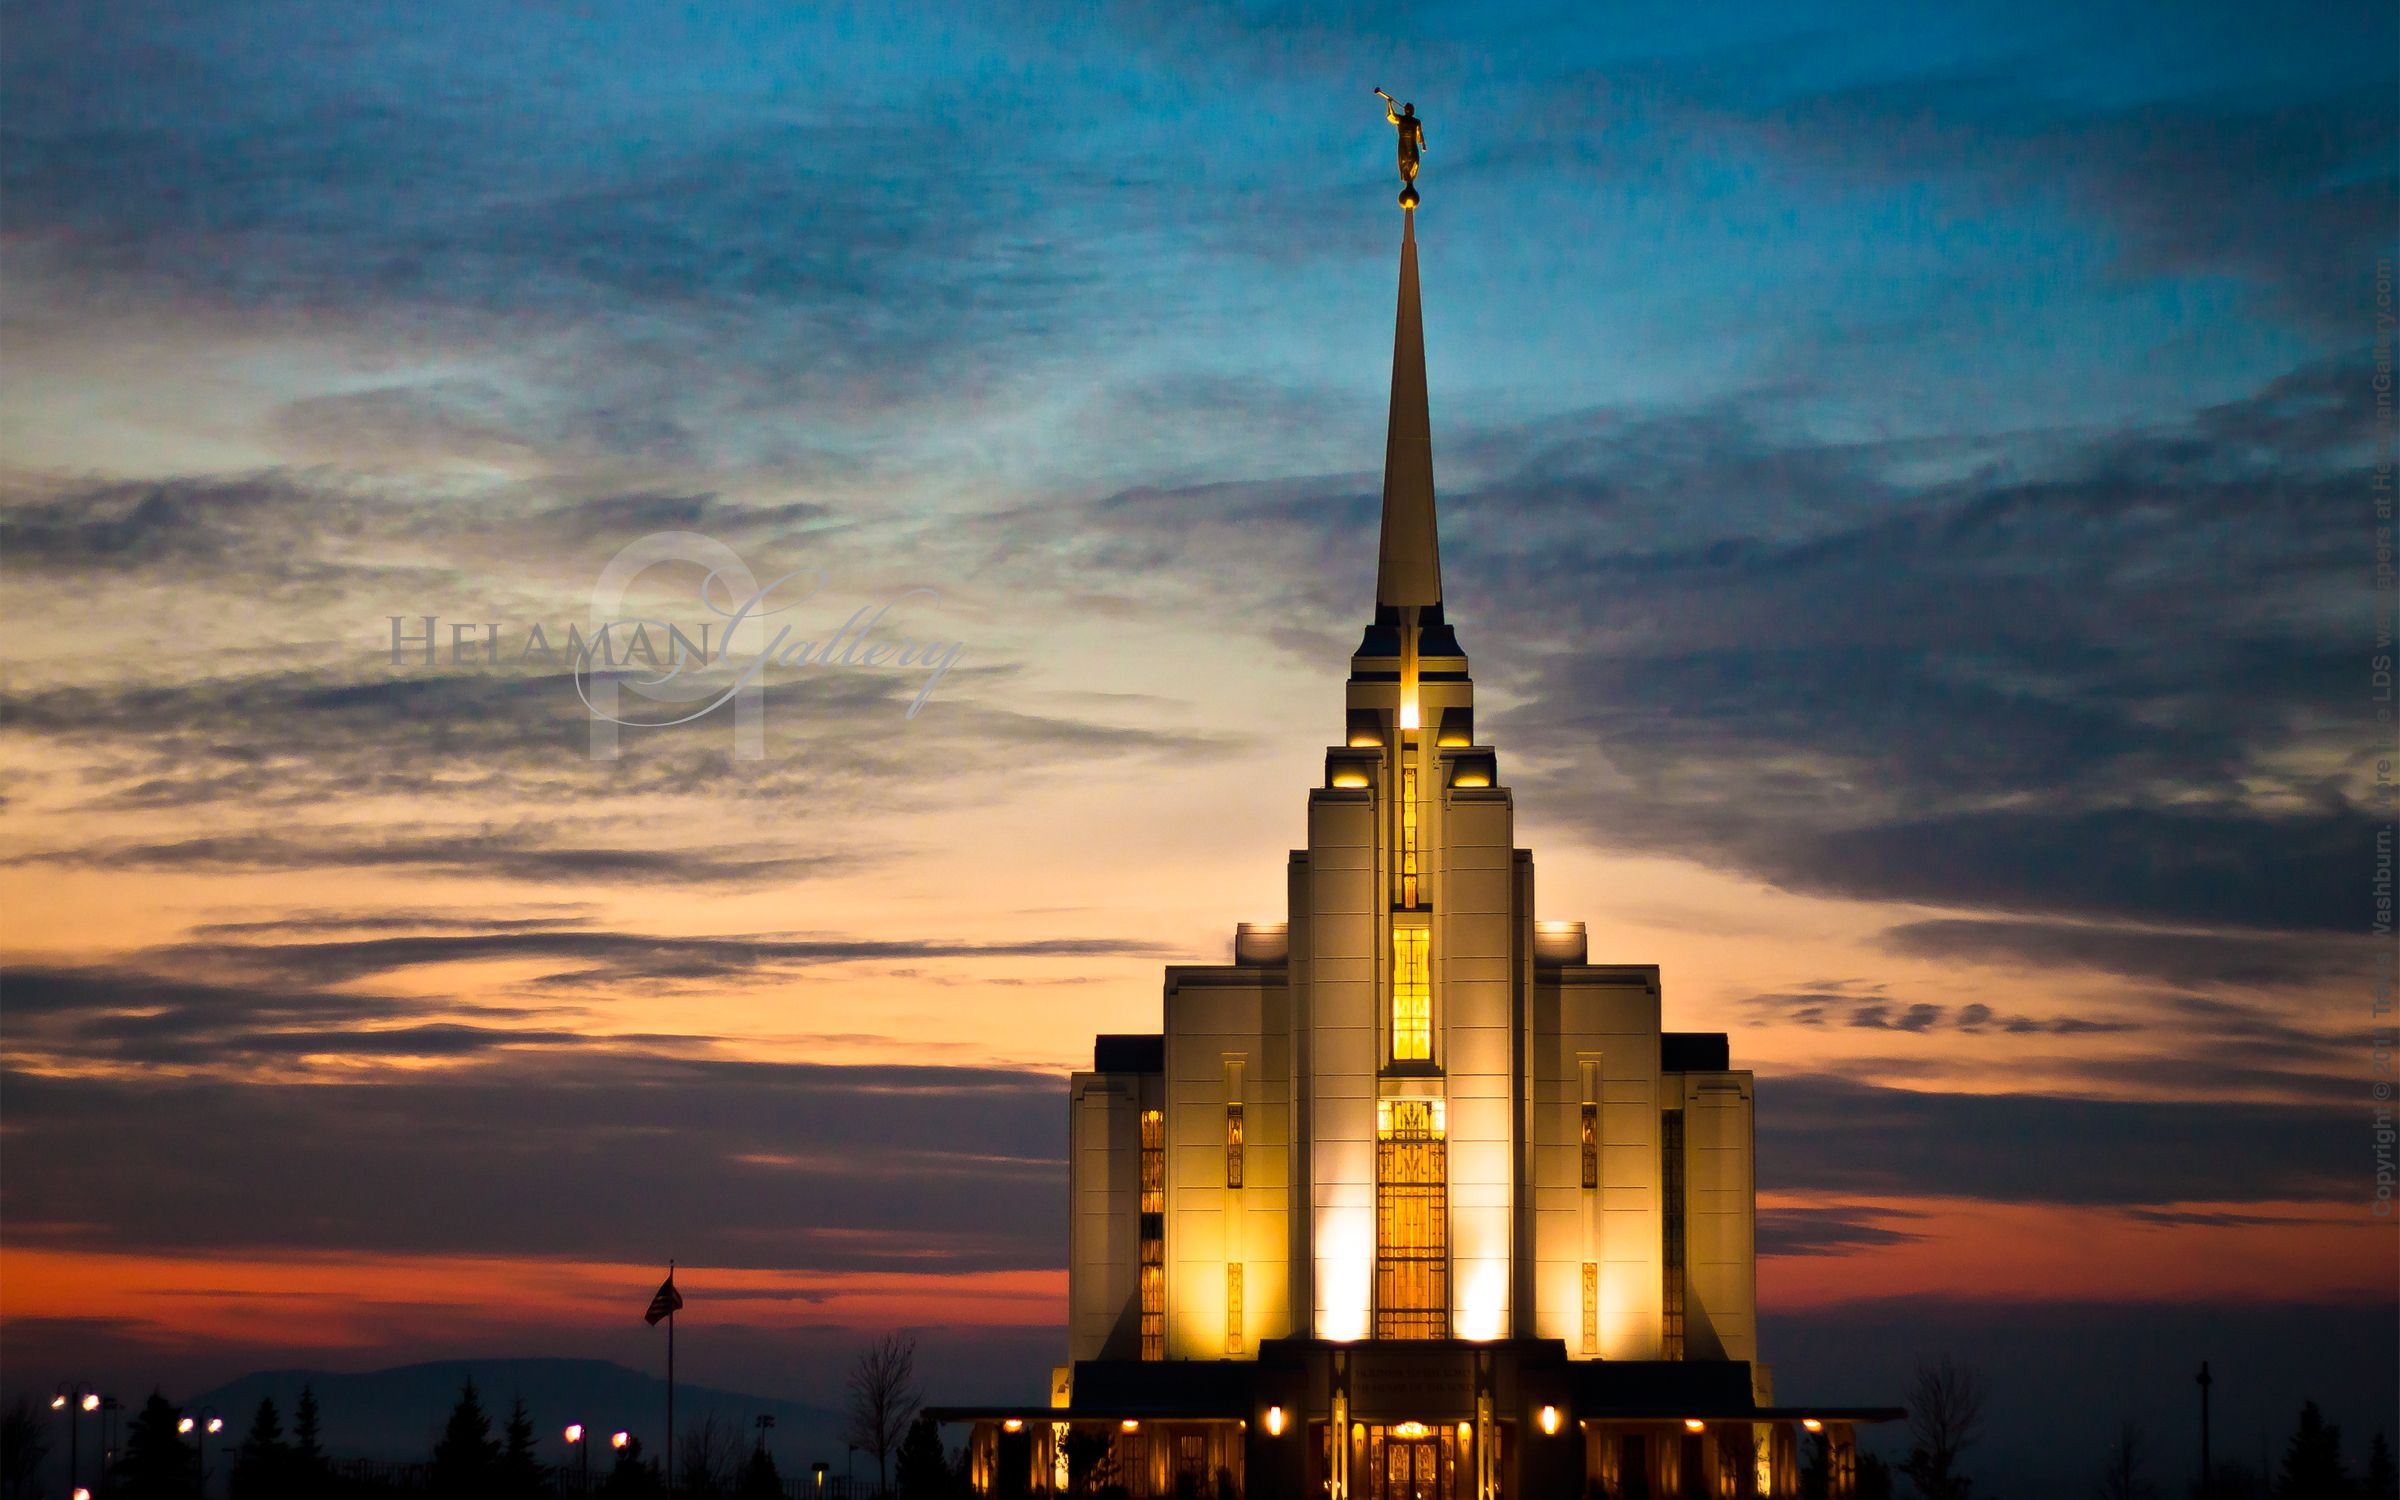 Lds temple wallpapers top free lds temple backgrounds wallpaperaccess - Lds temple wallpaper ...